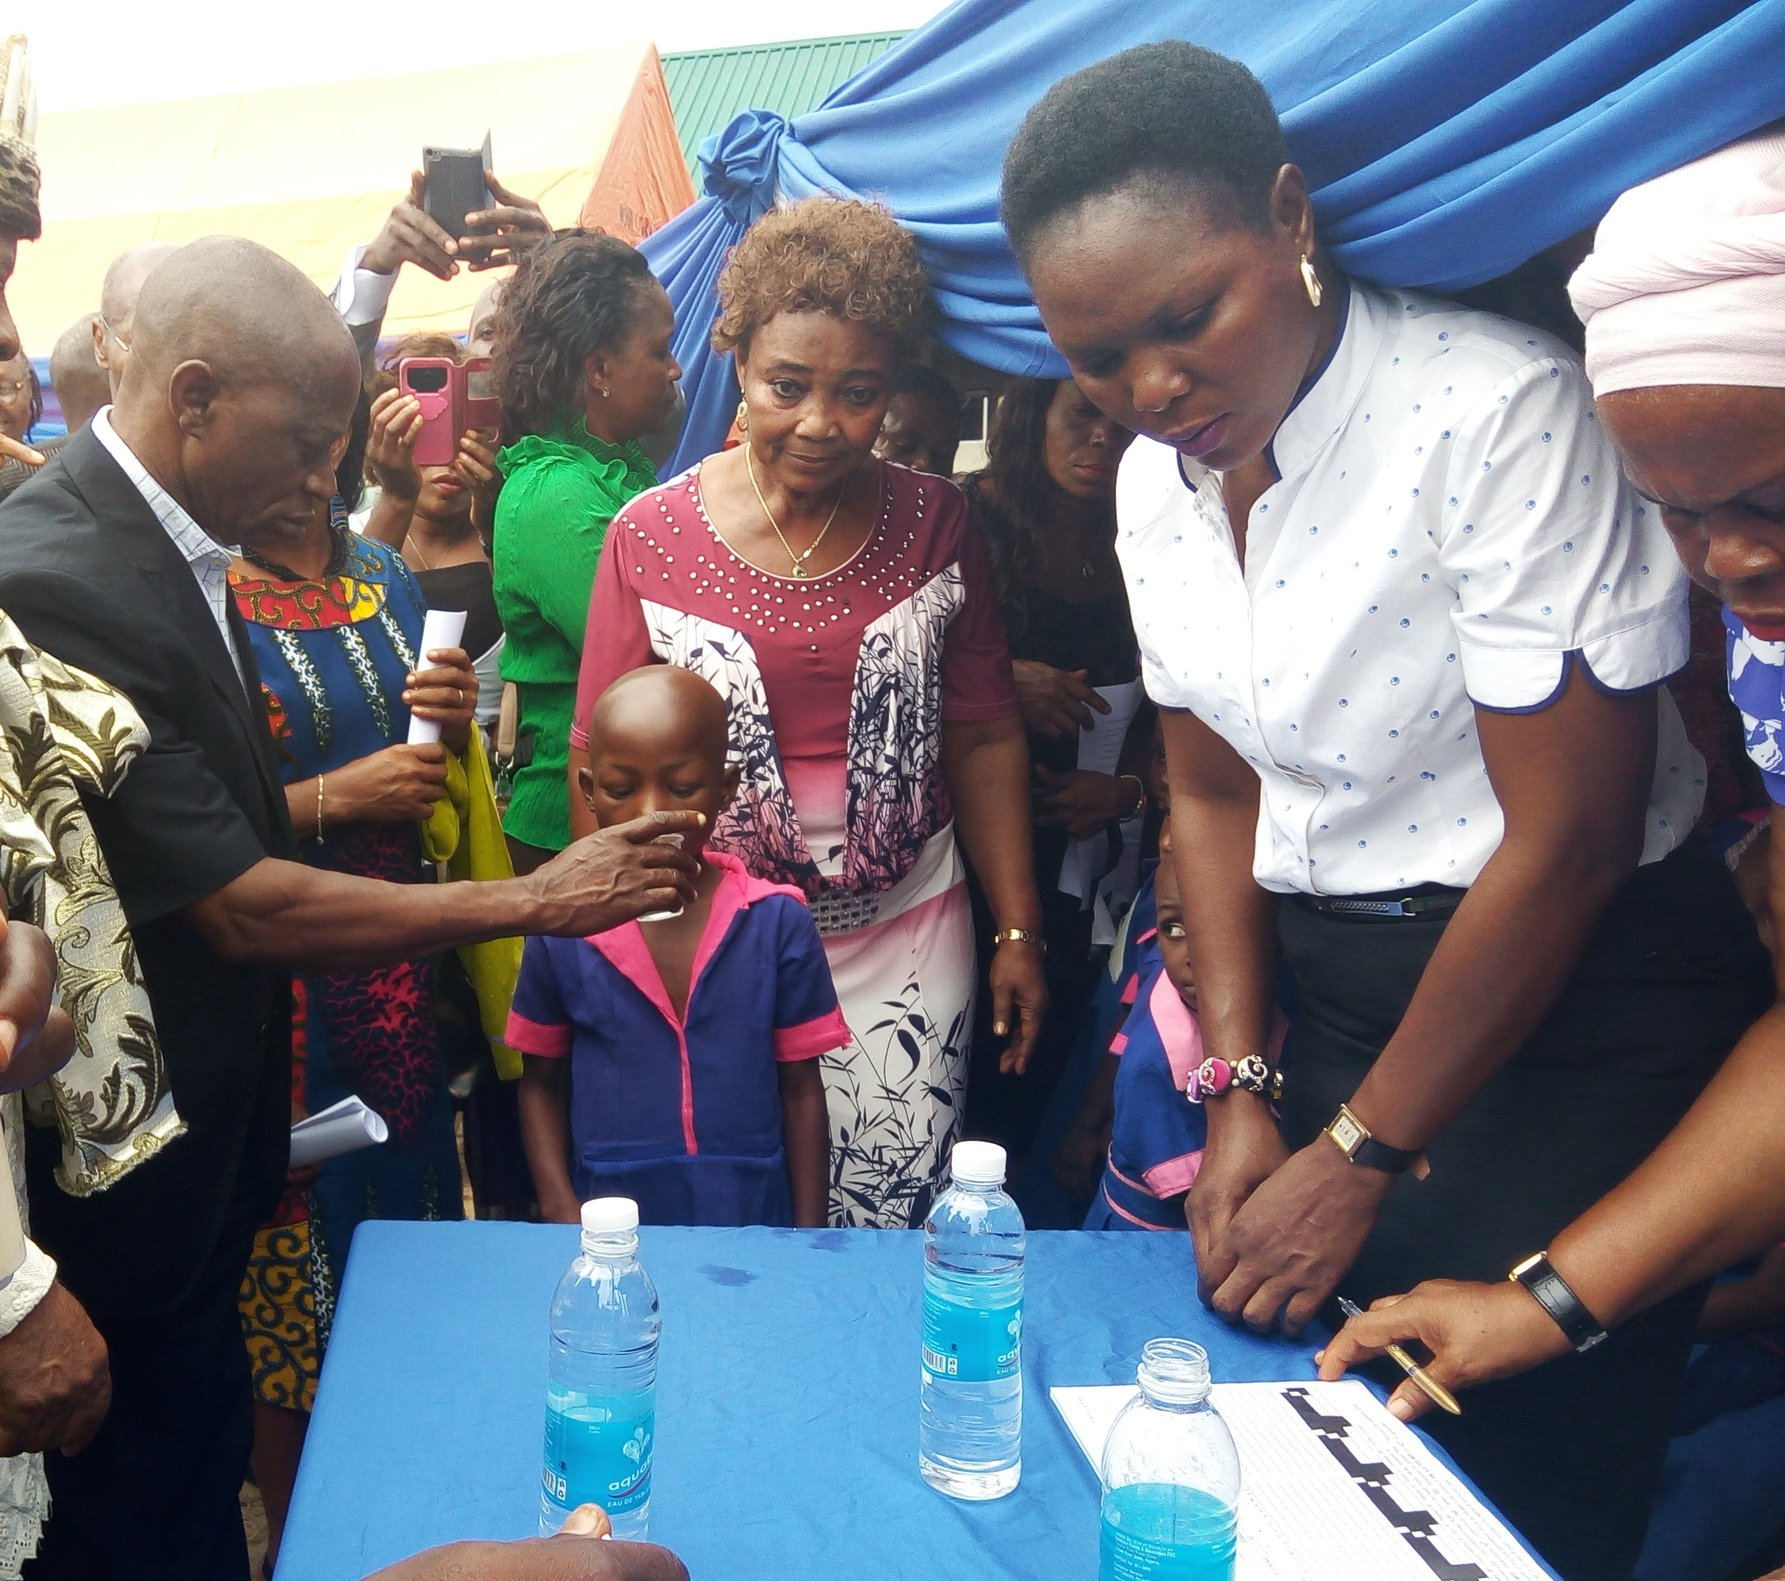 Press Release: Cross River, Nigeria to Treat 600,000 Children for Parasitic Worms